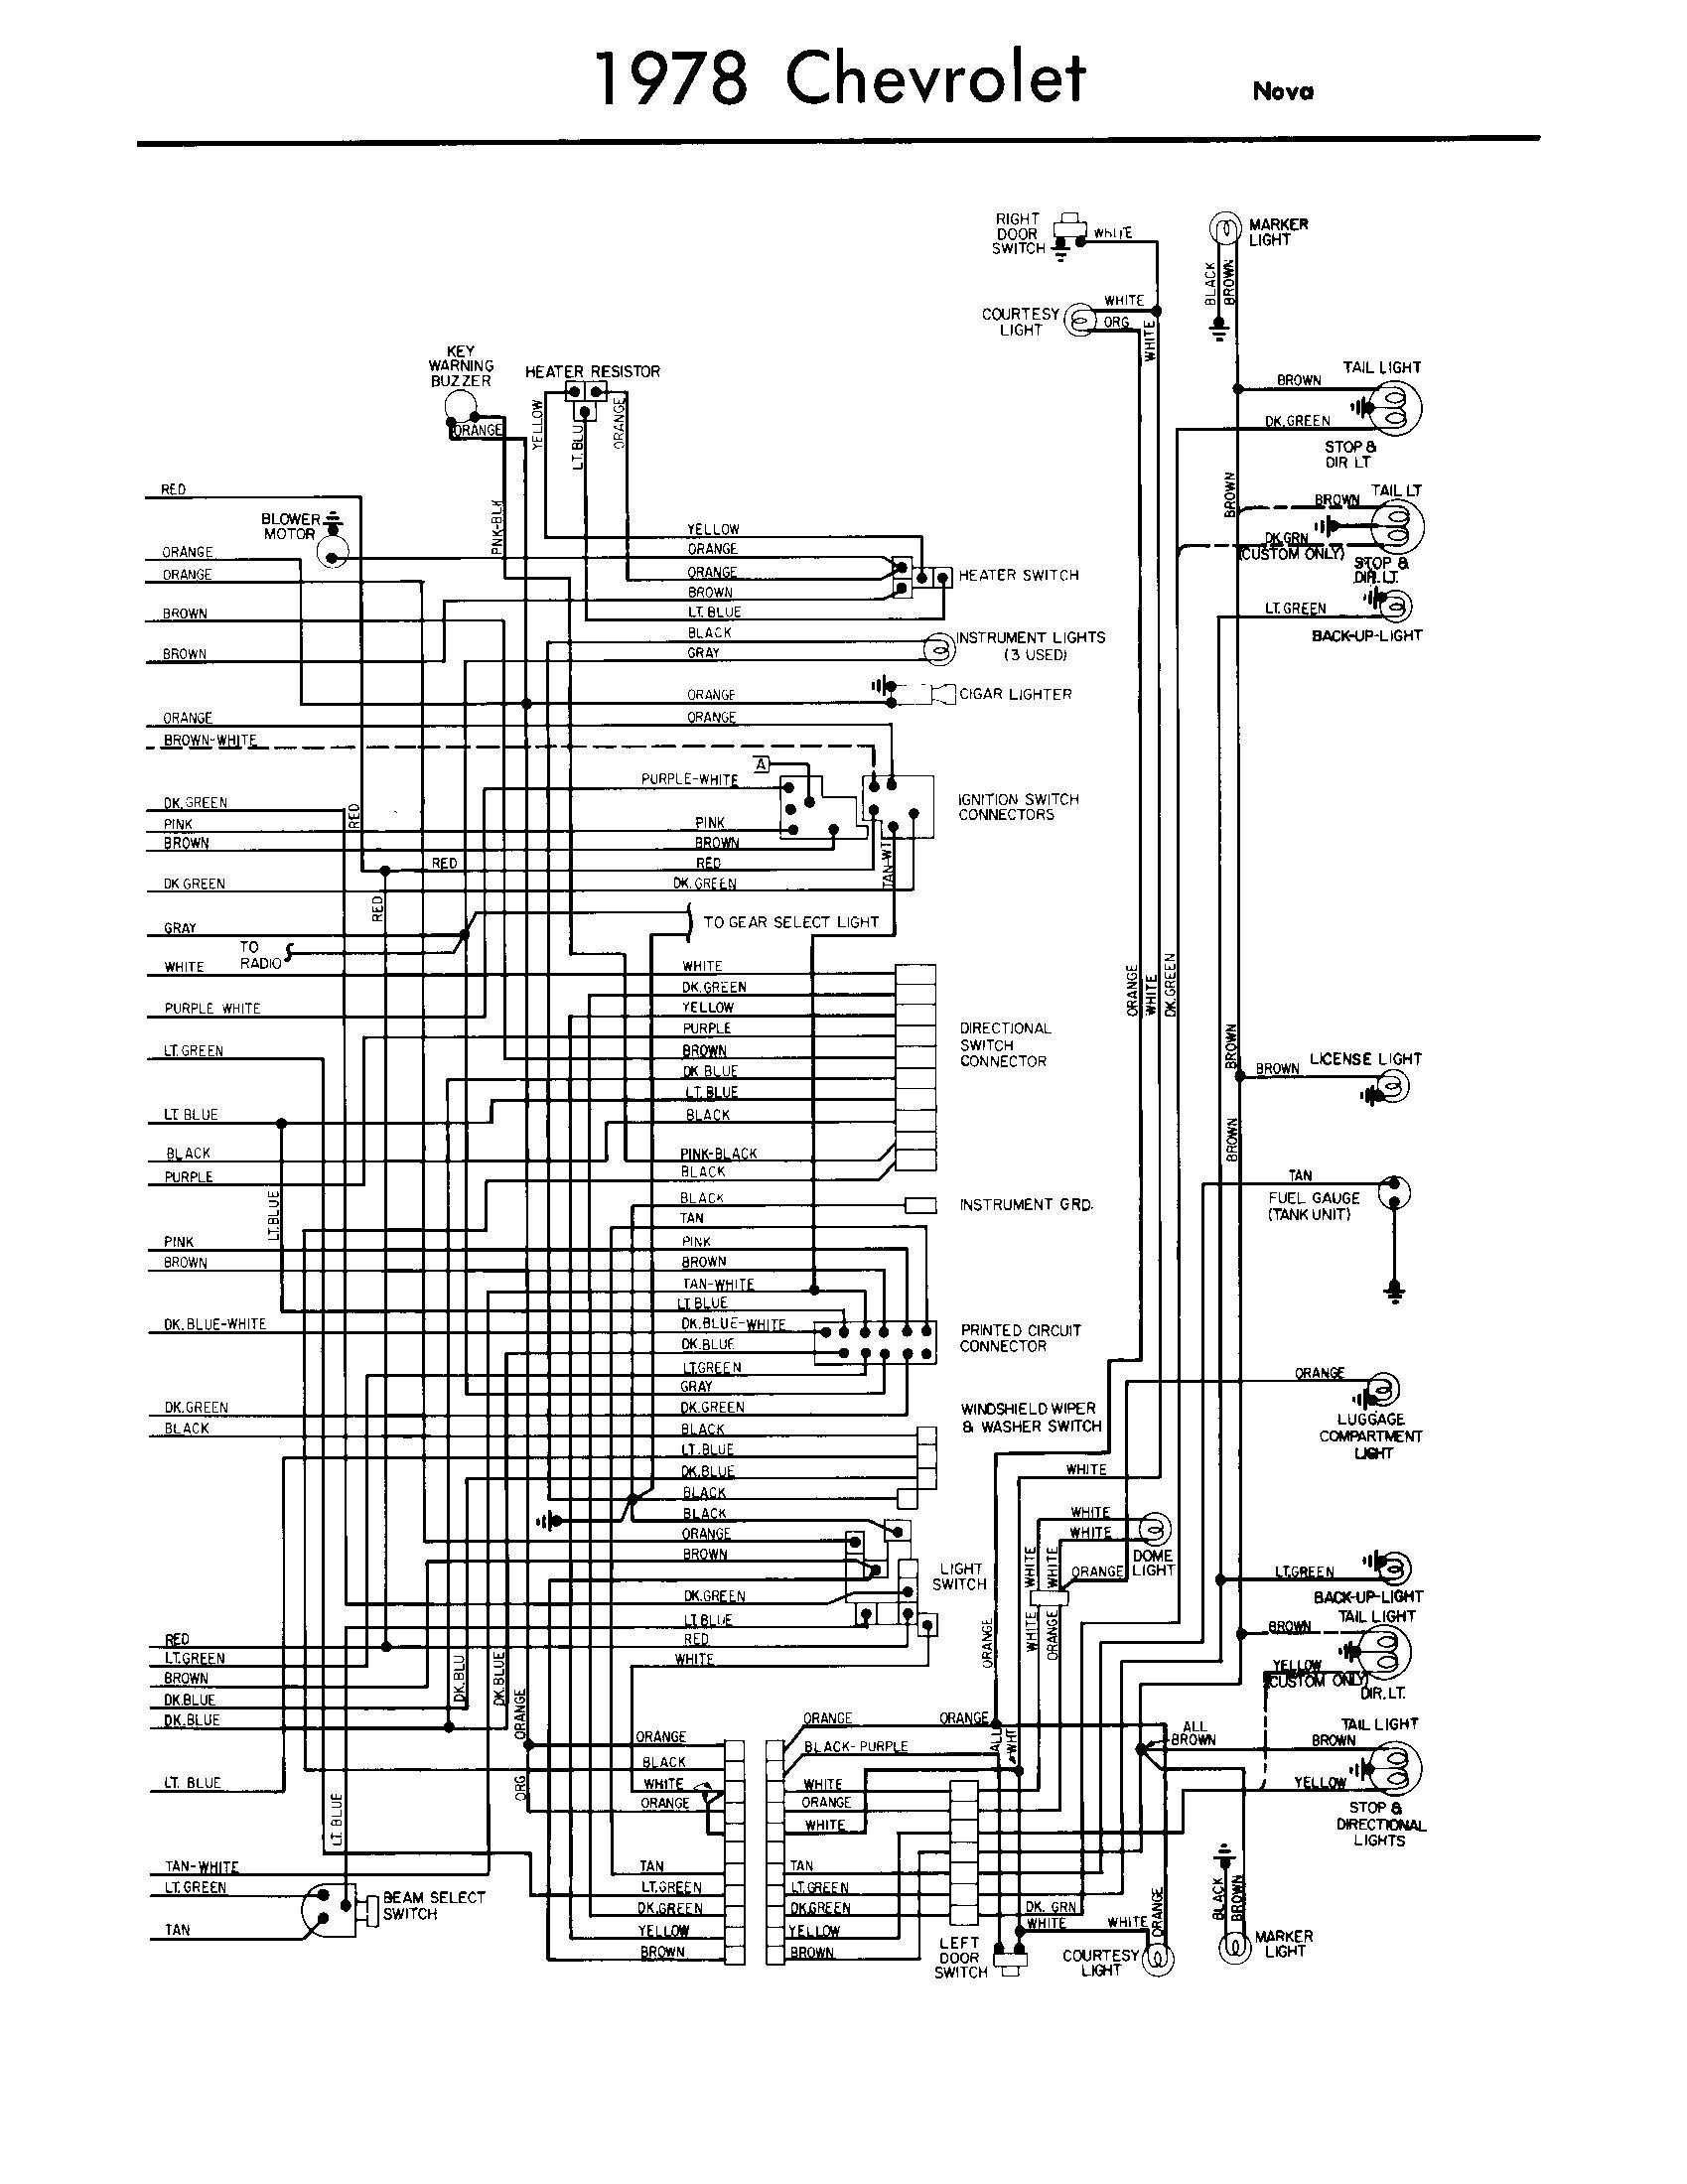 72 chevy starter wiring diagram 72 chevy also 1972 chevy nova wiring rh lsoncology co 1970 chevy nova starter wiring 72 Chevy Starter Wiring Diagram